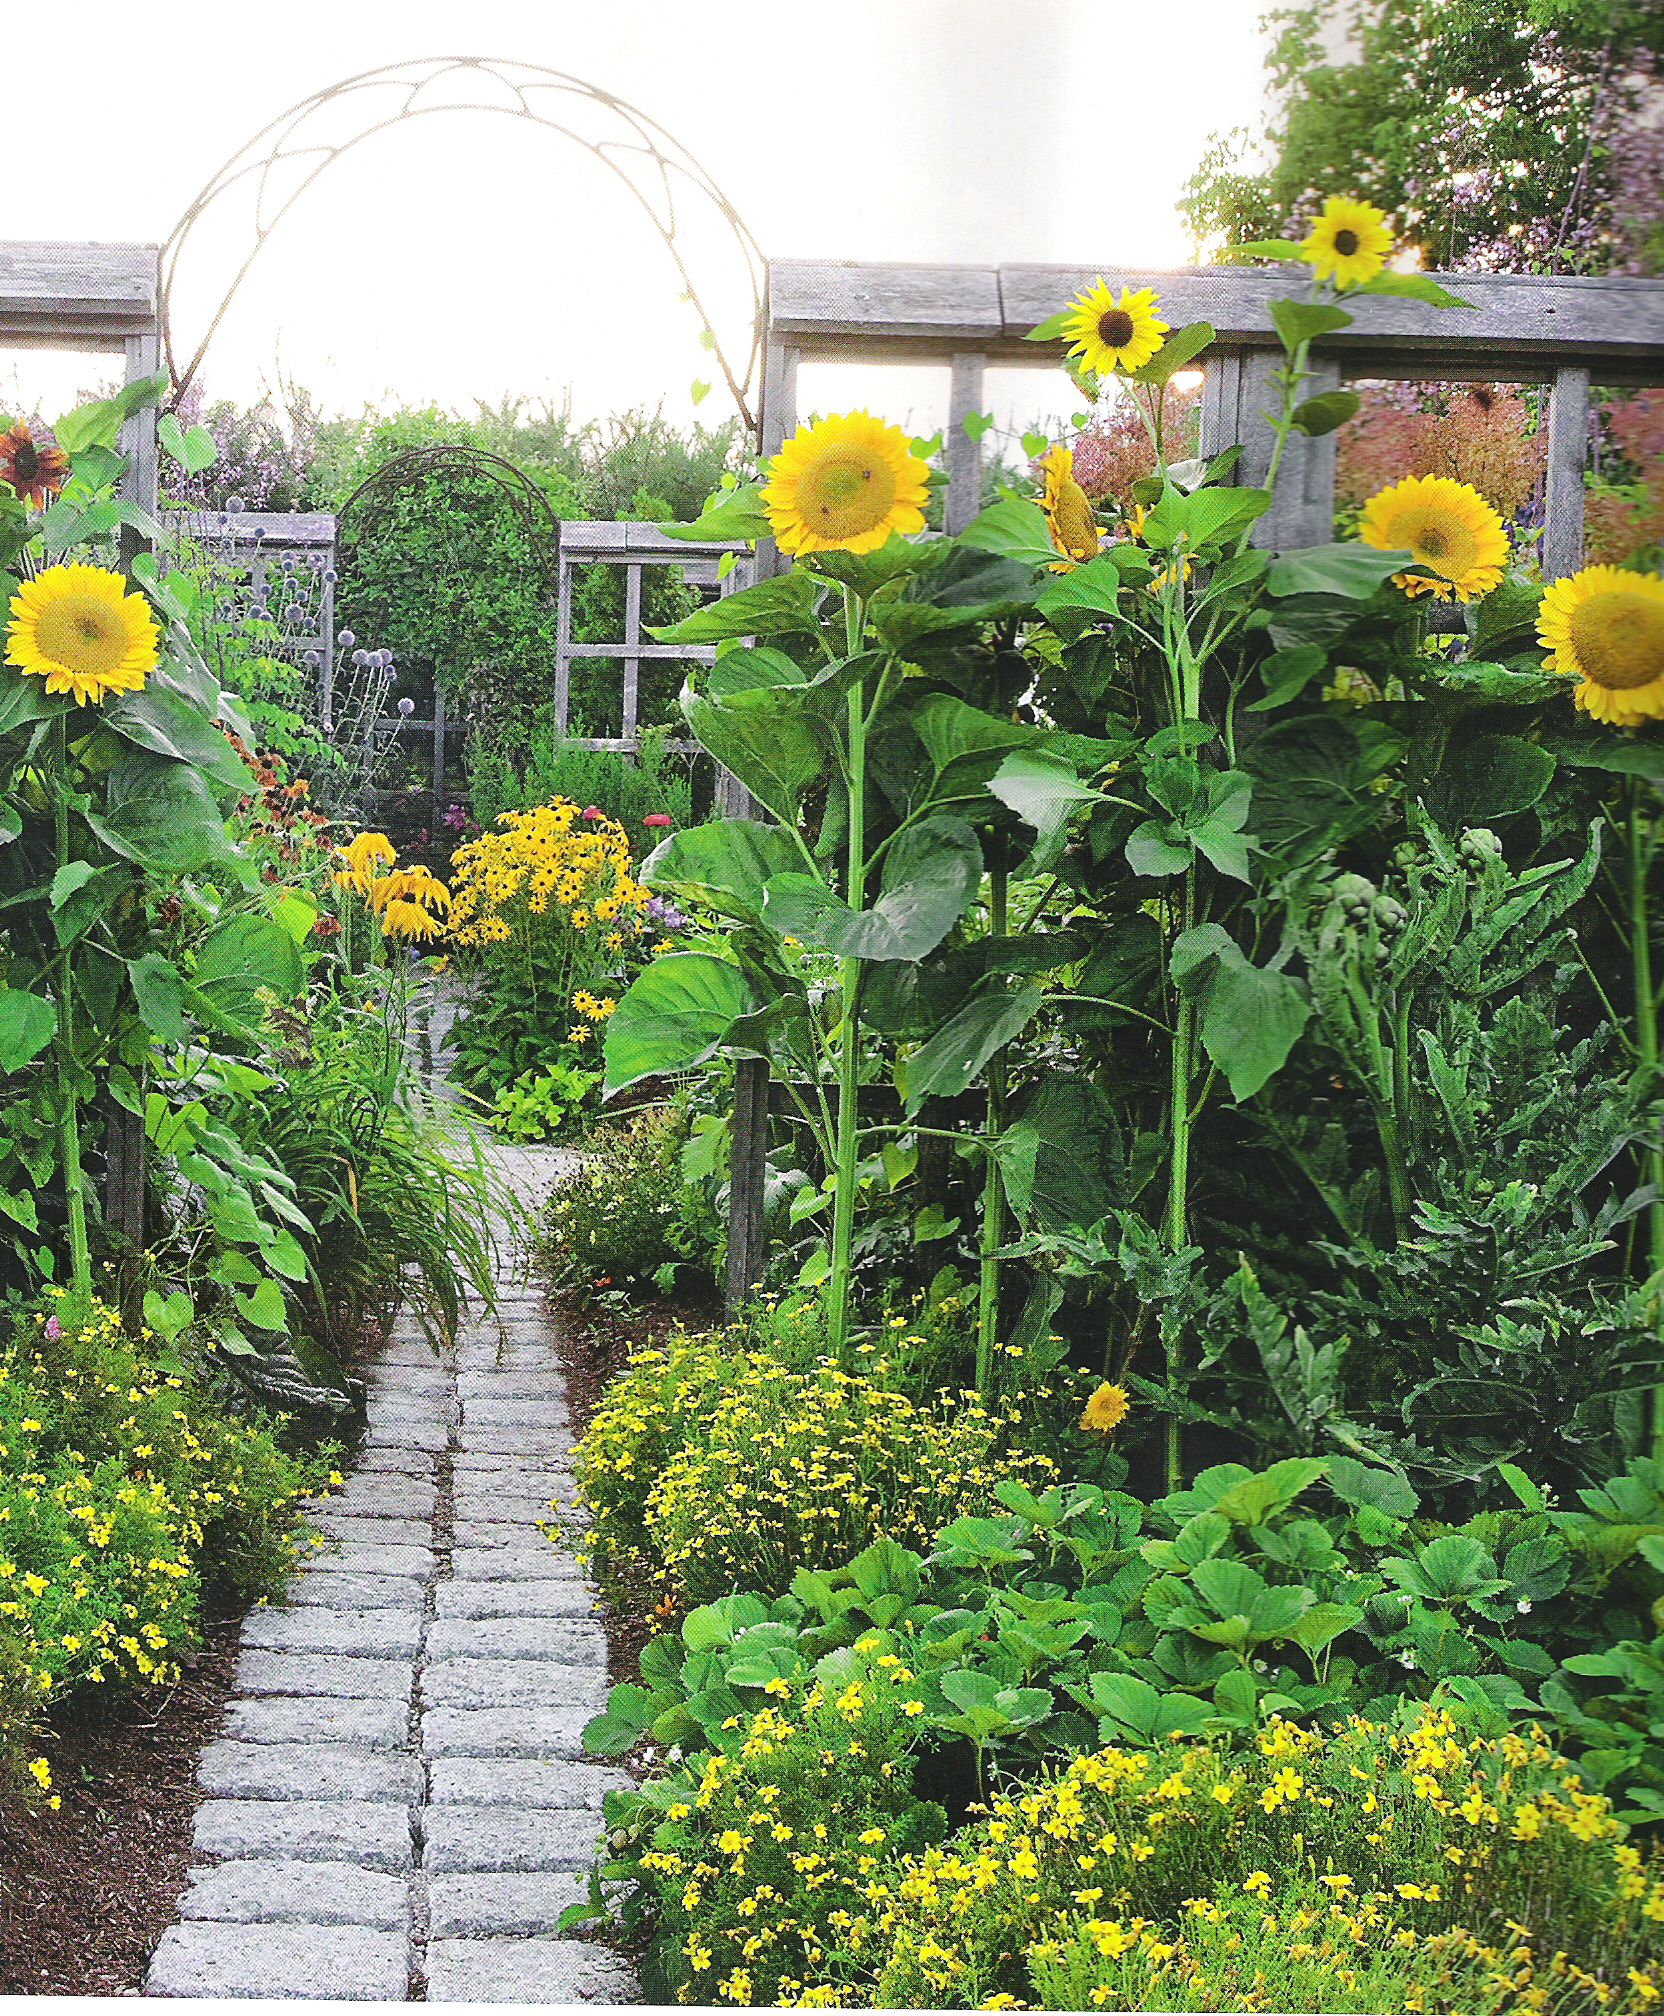 Along The Brick Path Through The Vegetable Garden Bloom Sunflowers Marigolds And Black Eyed S Flower Garden Design Sunflower Garden Beautiful Flowers Garden